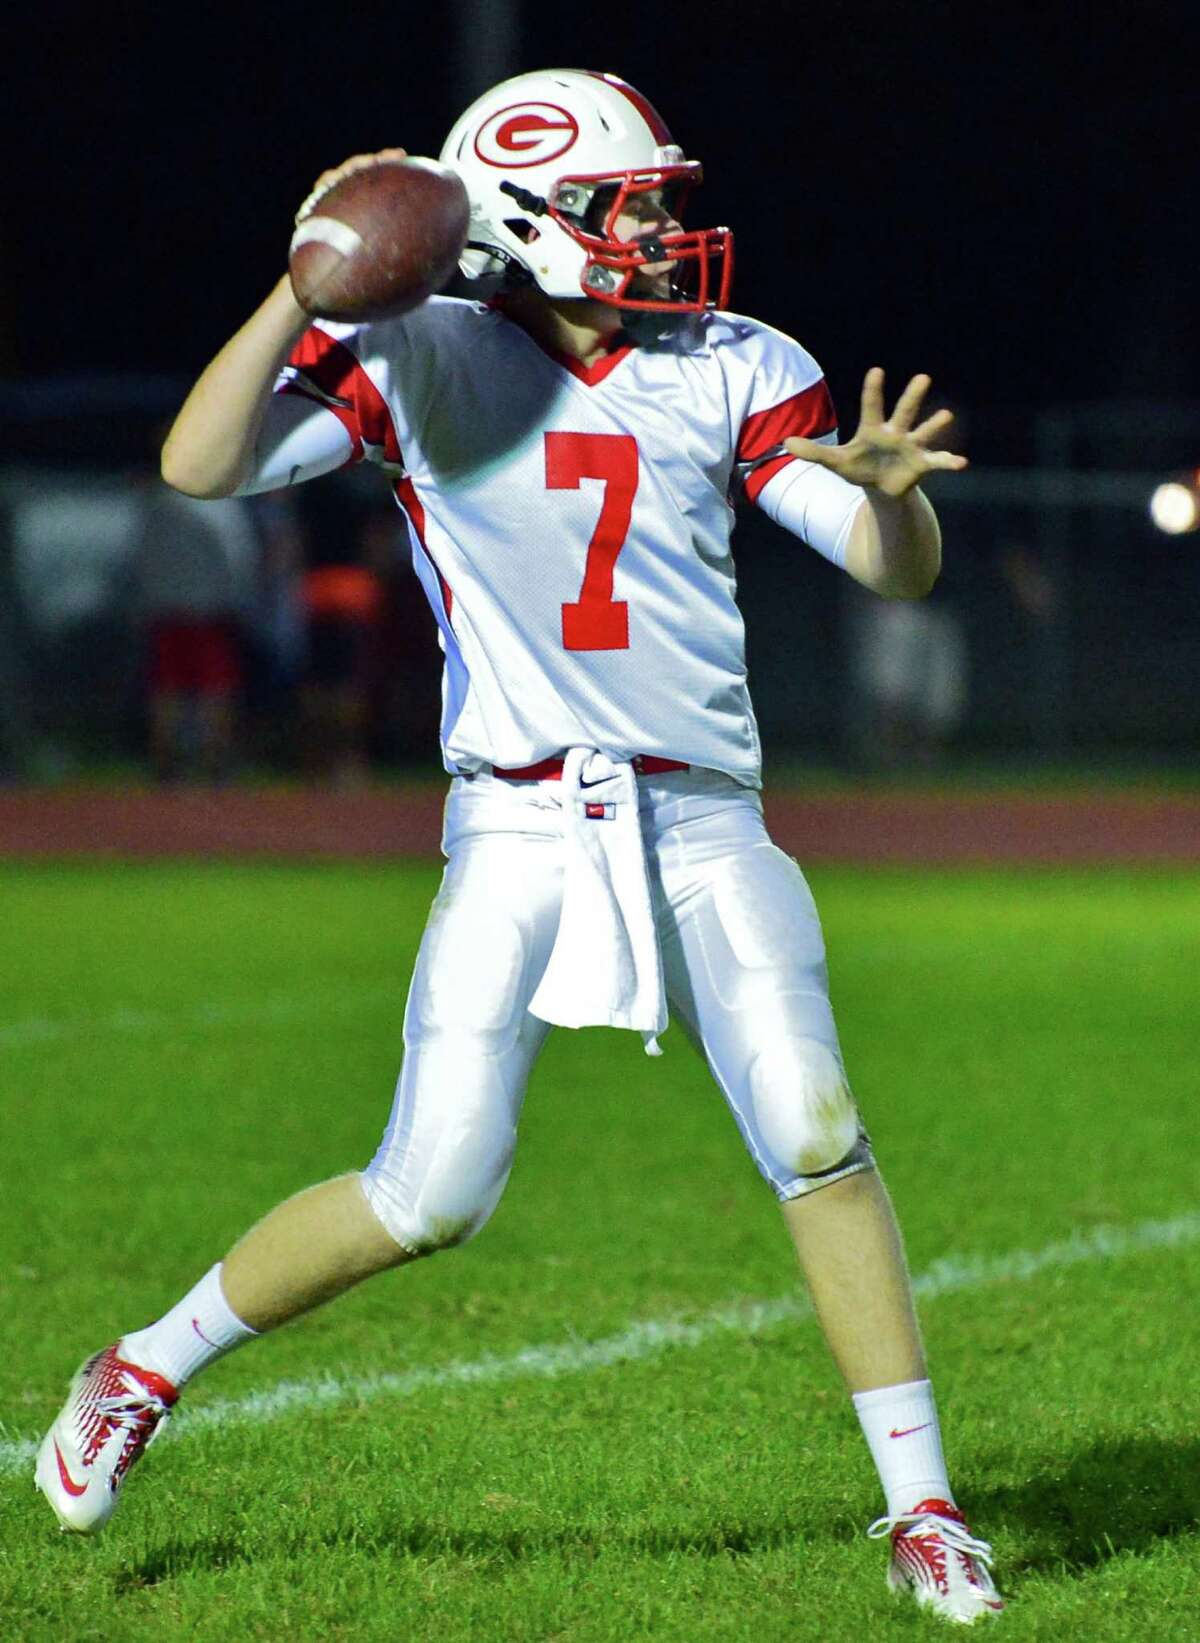 Guilderland QB #7 Frank Gallo gets a pass off during Friday night's game against Bethlehem Sept. 20, 2013, in Delmar, NY. (John Carl D'Annibale / Times Union)